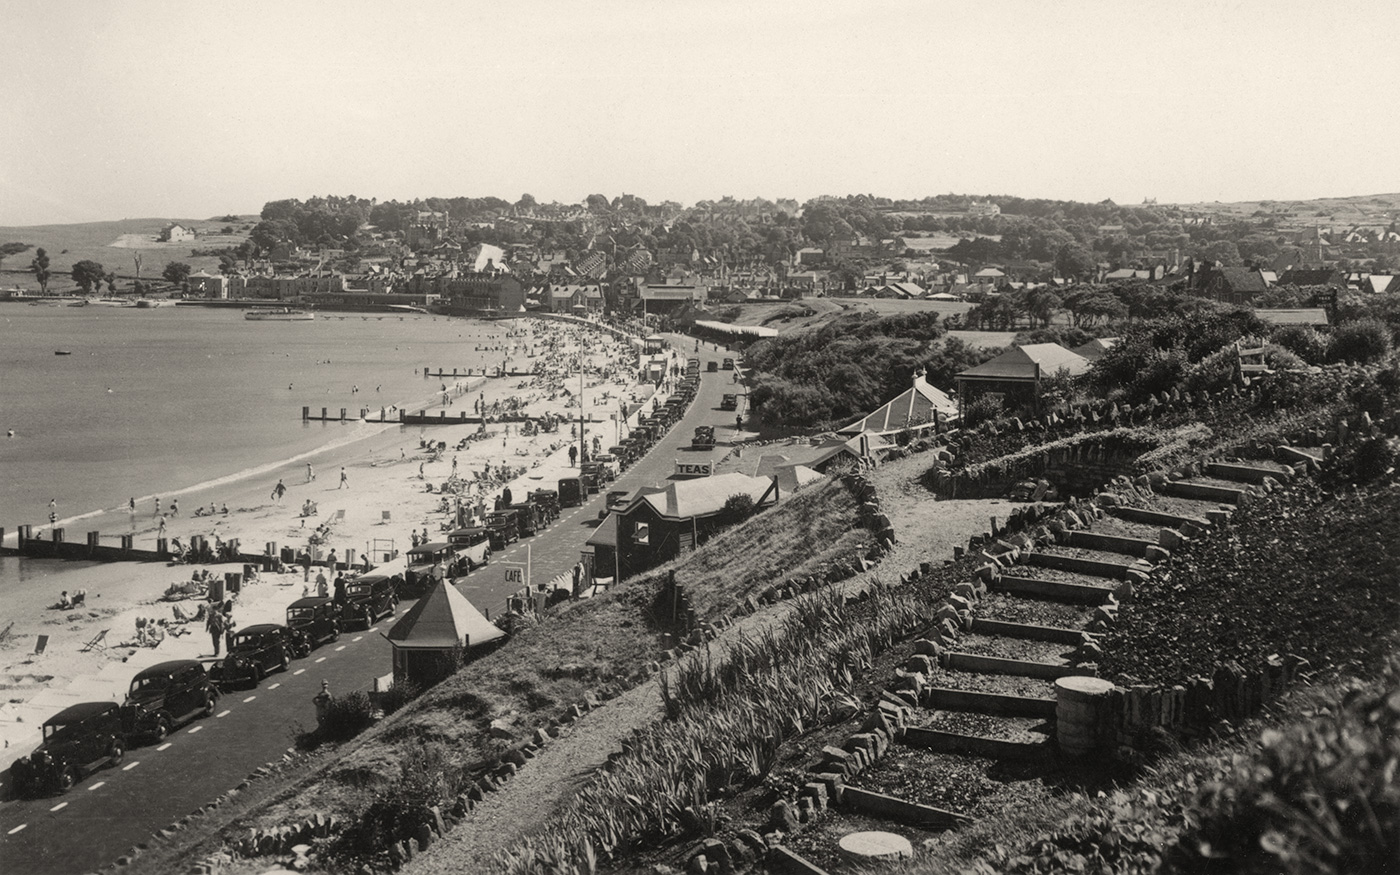 Shore Road and seafront in the 1930s